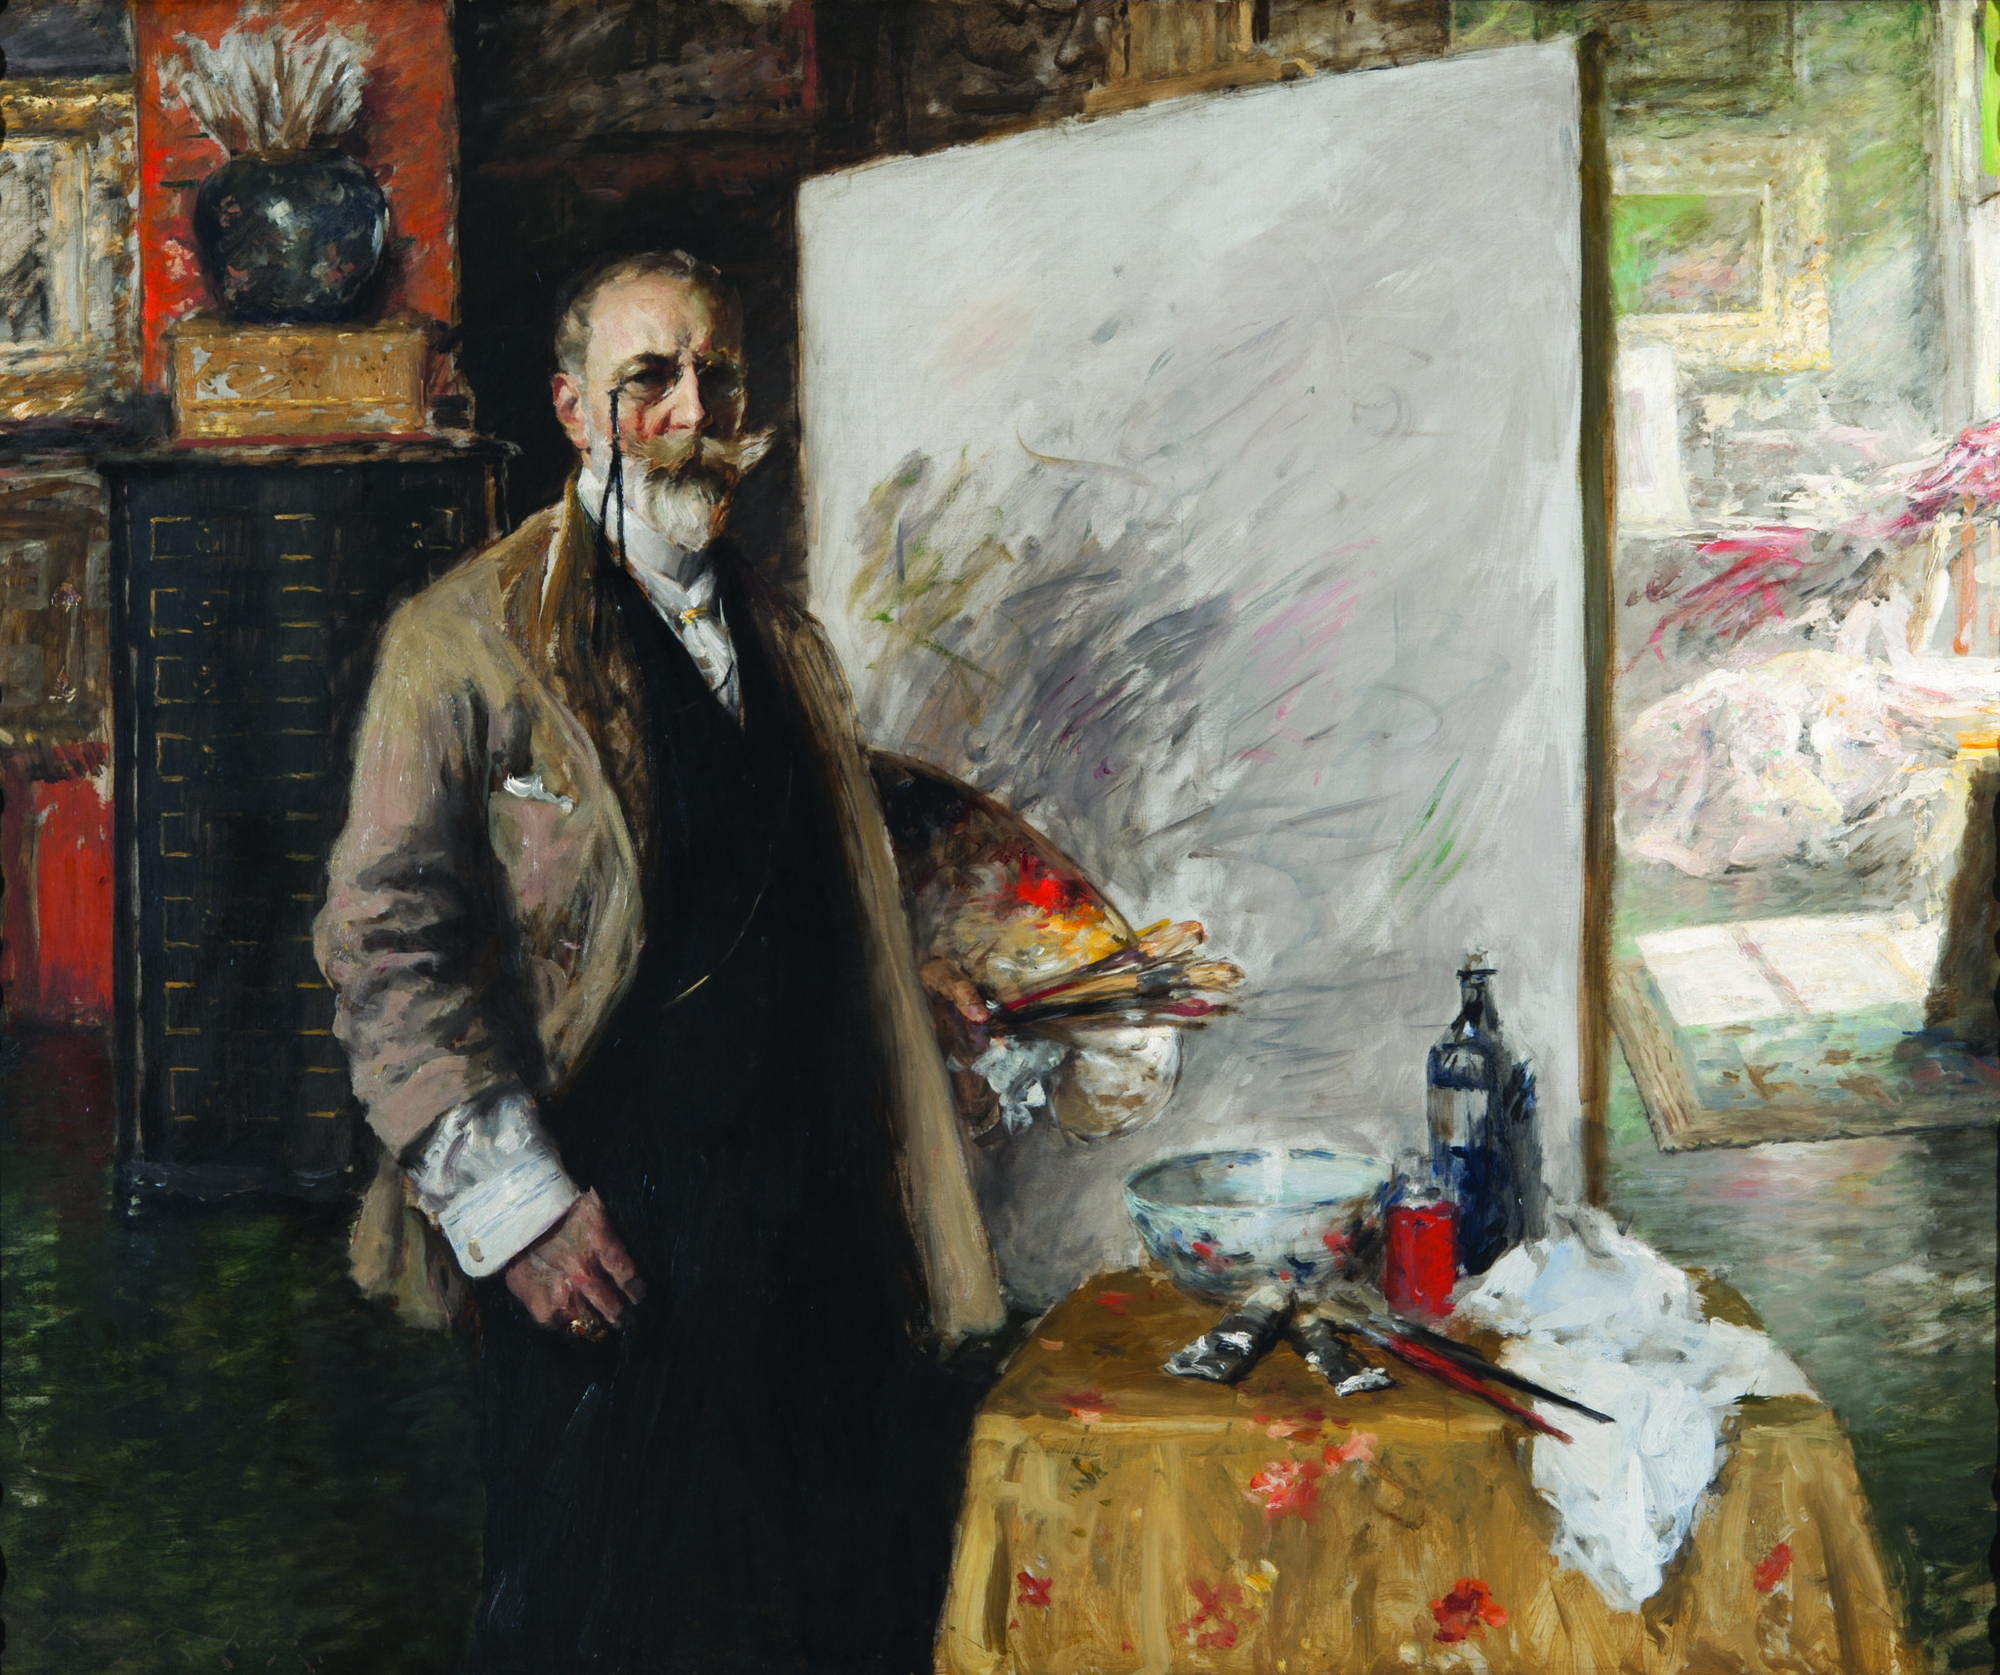 Restoring The Portrait Of An Artist How A New Exhibition Is Giving William Merritt Chase His Due Los Angeles Times